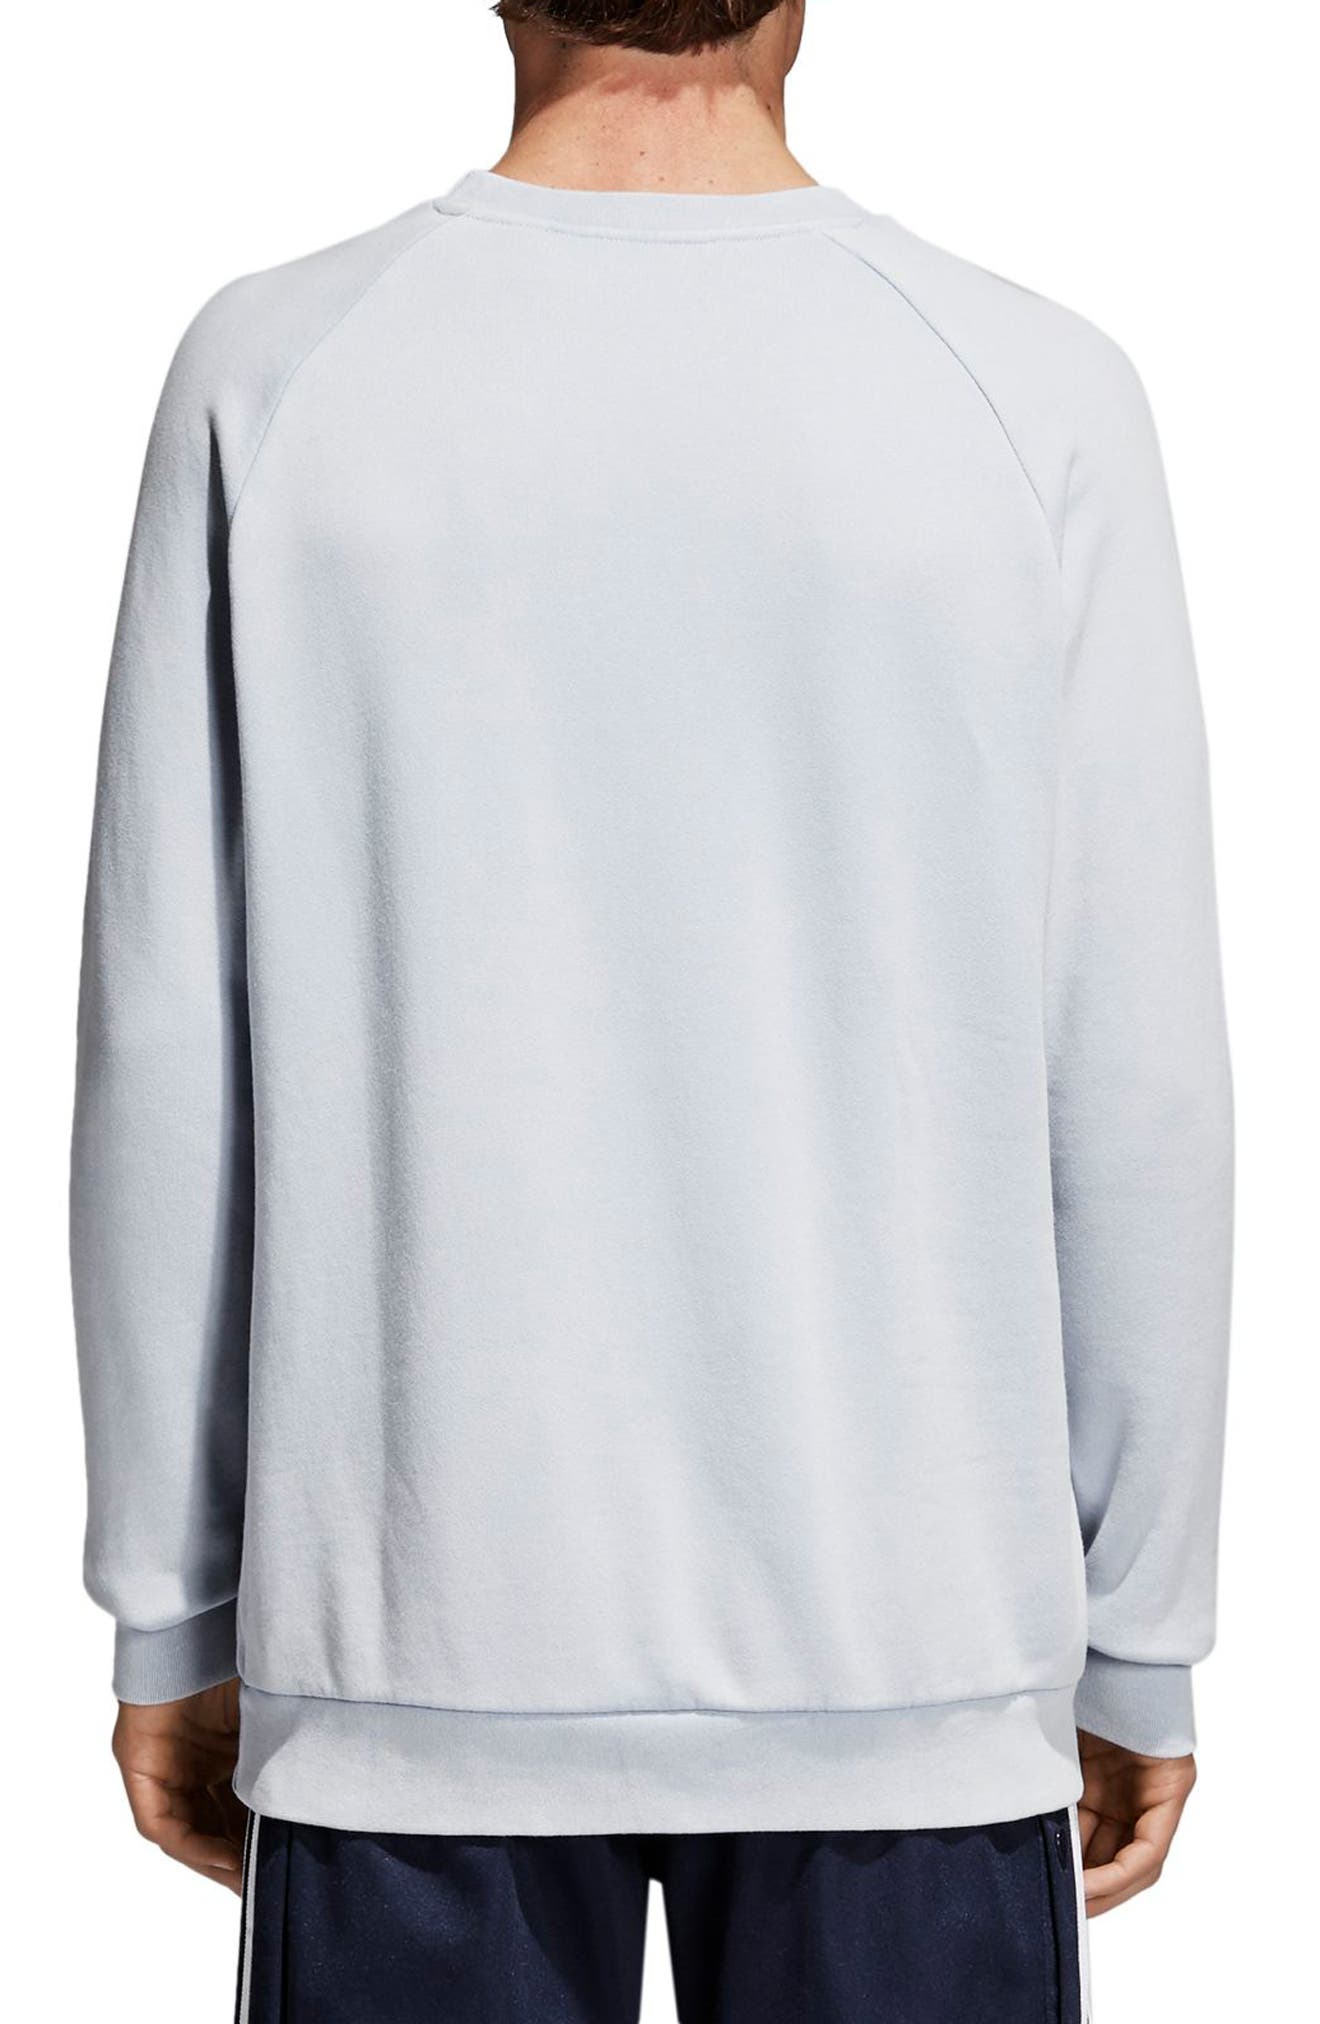 Trefoil Sweatshirt,                             Alternate thumbnail 3, color,